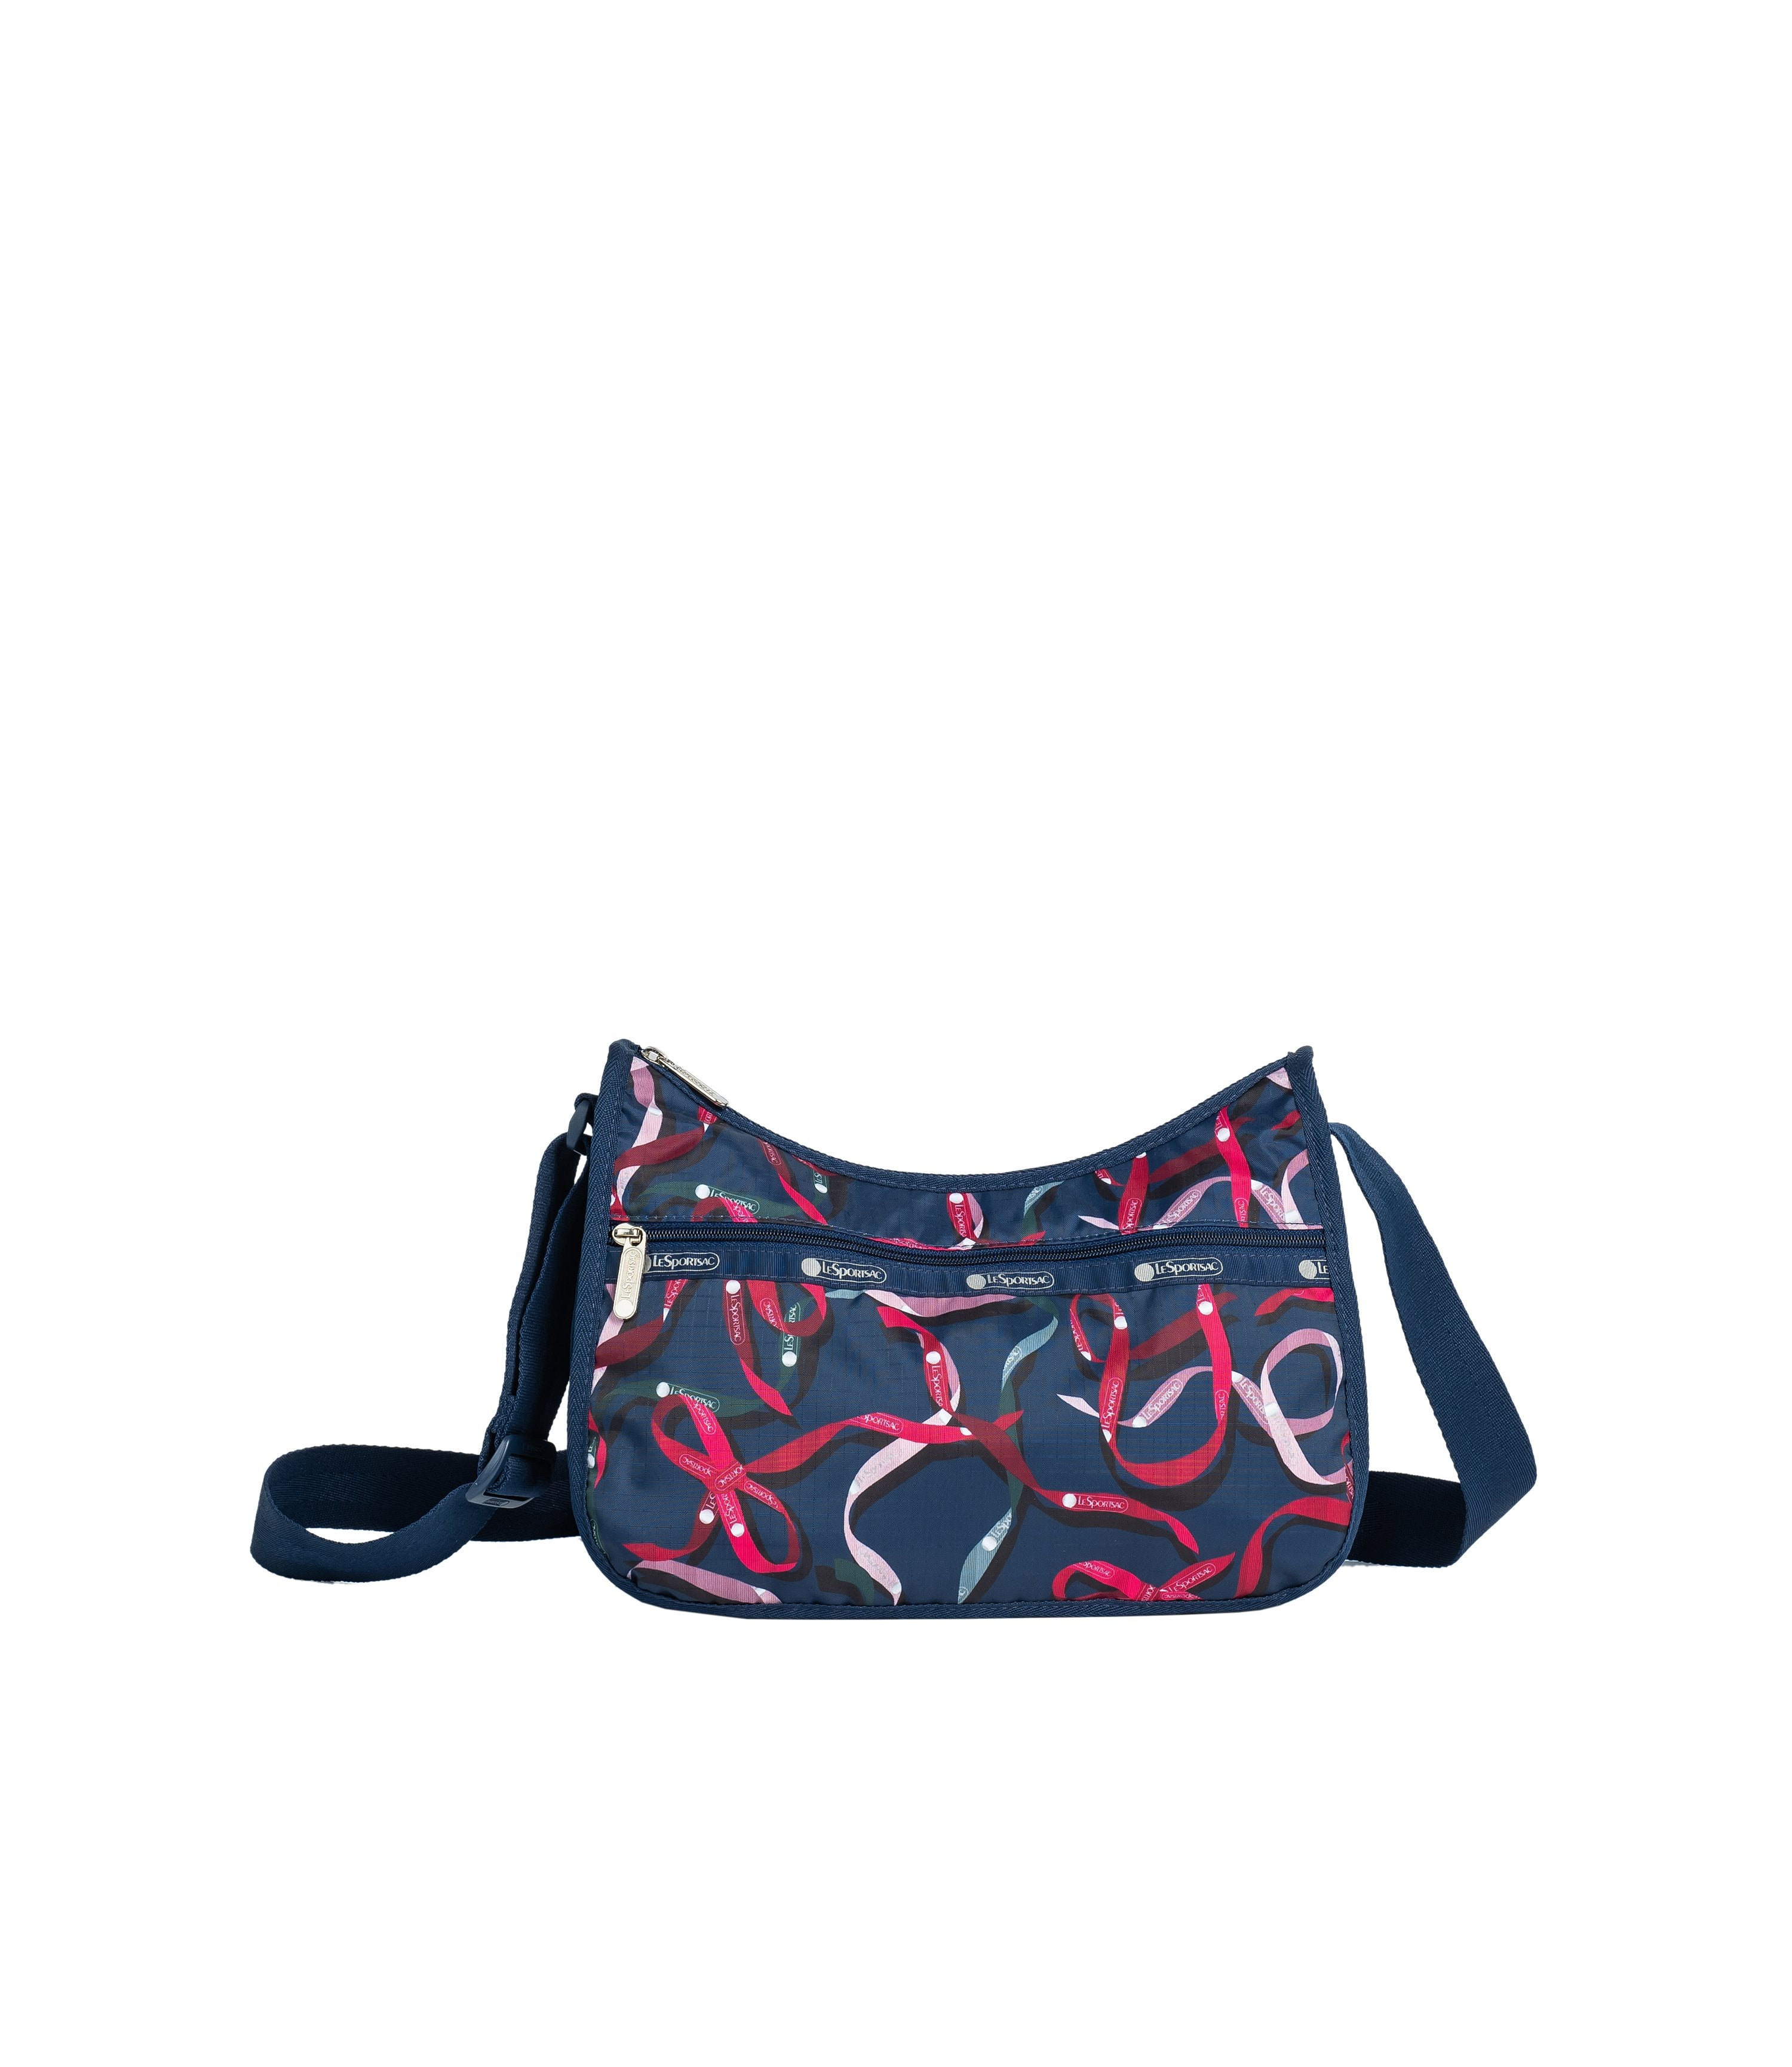 LeSportsac - Handbags - Classic Hobo - Ribbons Navy print